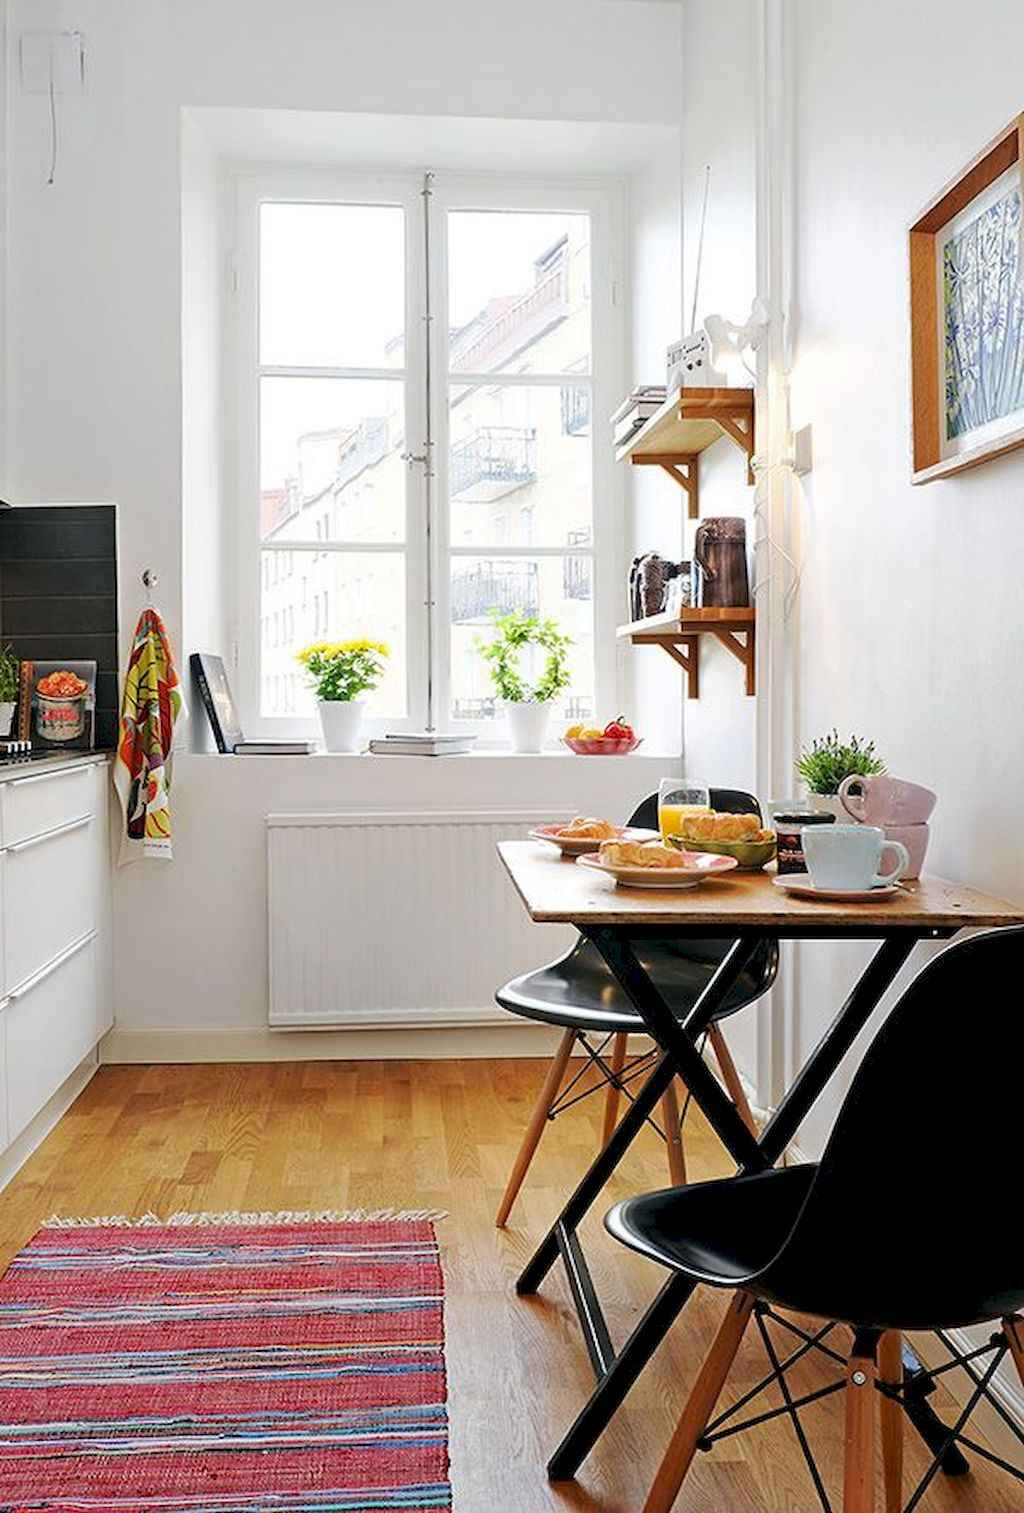 Cozy apartment decorating ideas on a budget (41)